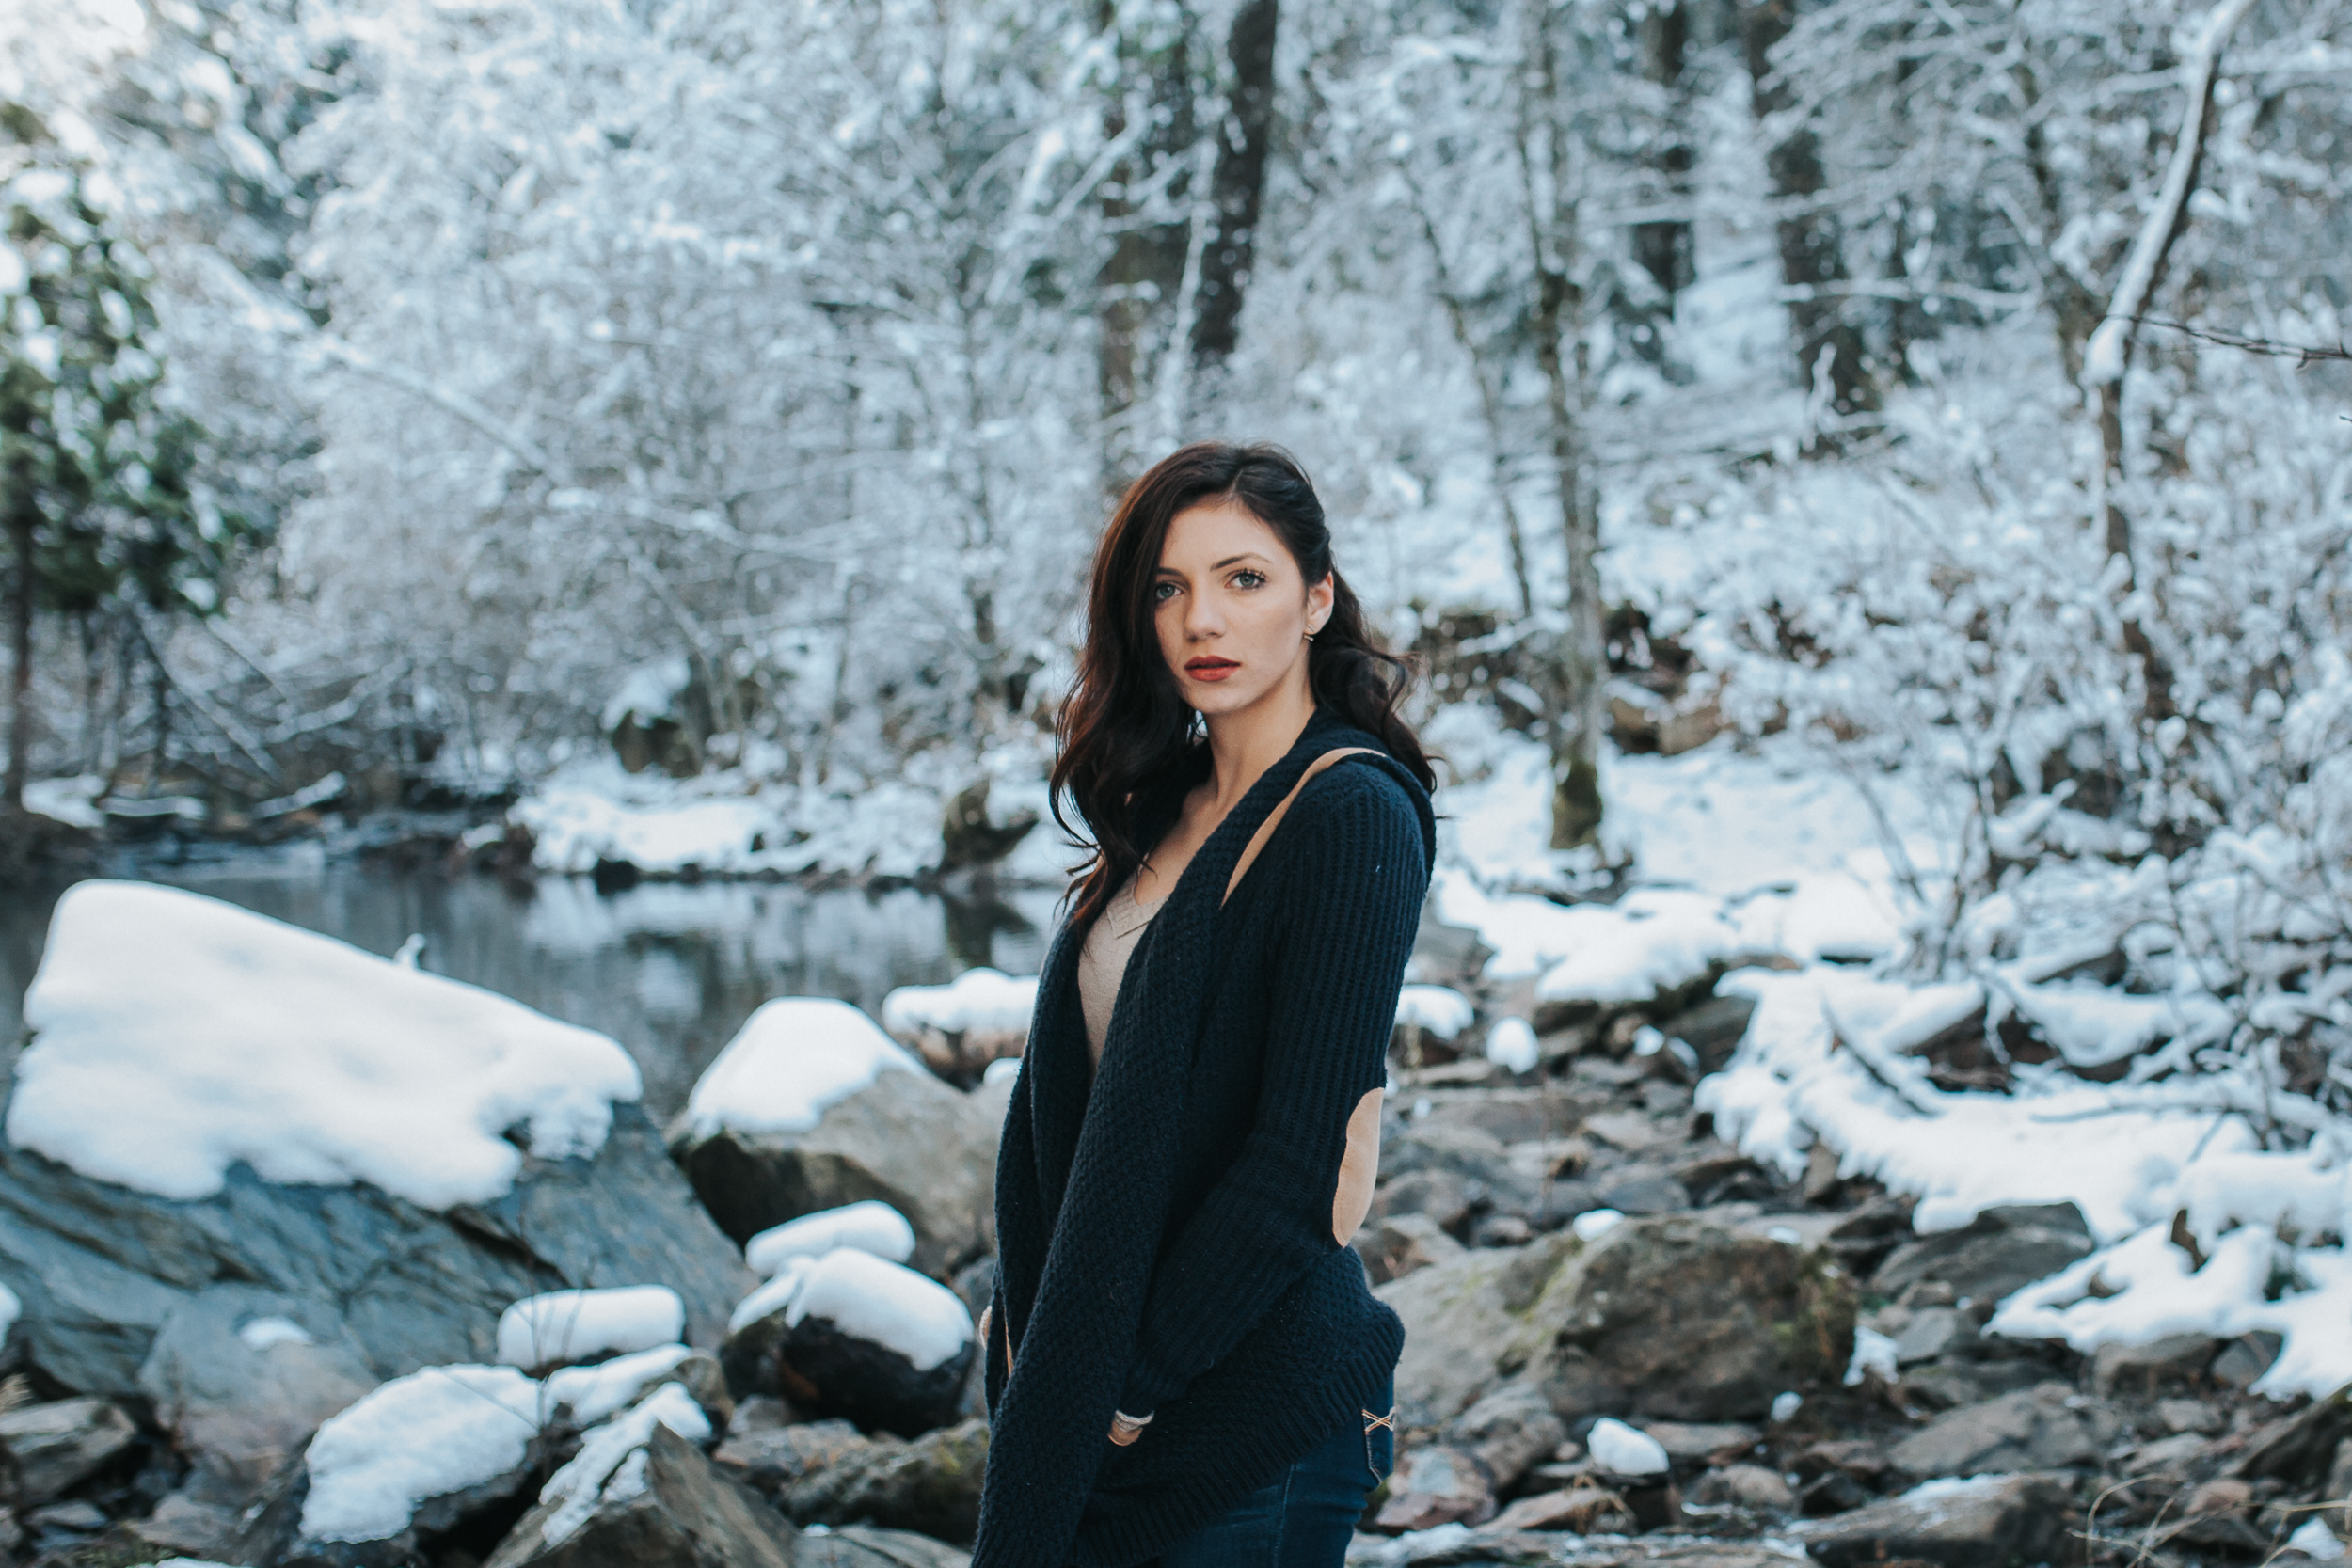 Snowy mountain portraits